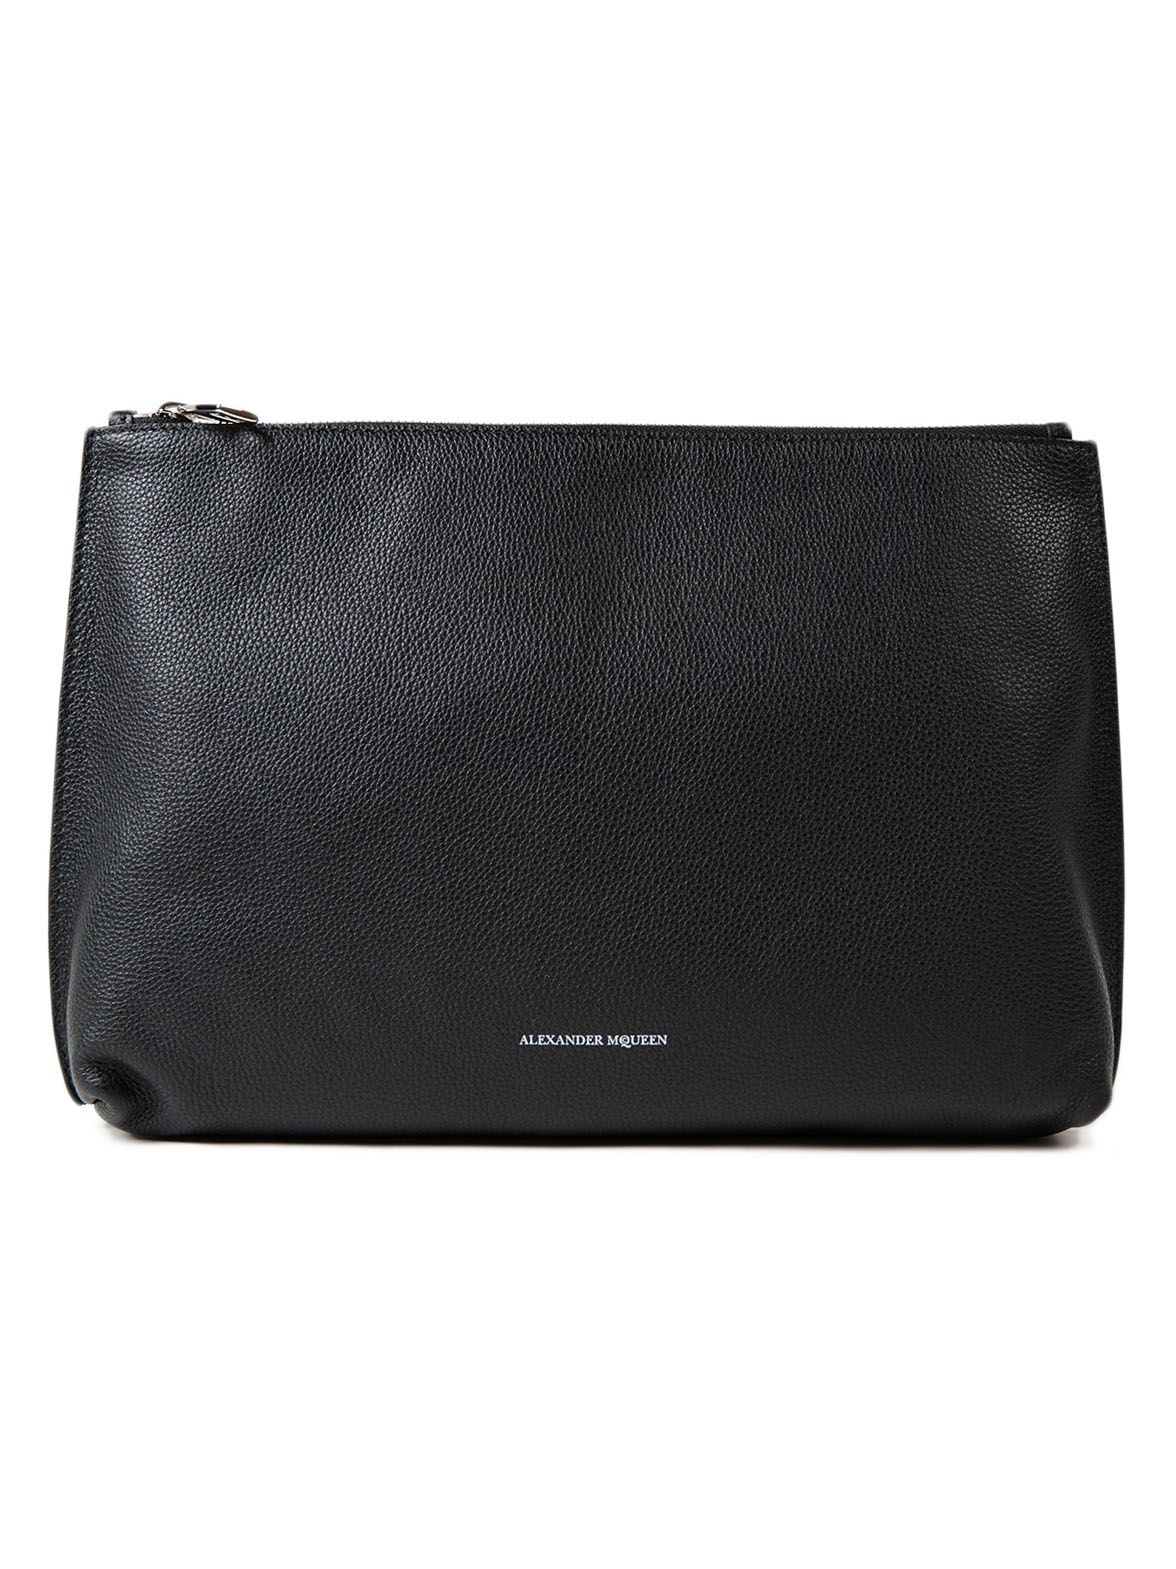 Alexander McQueen Medium Zip Pouch